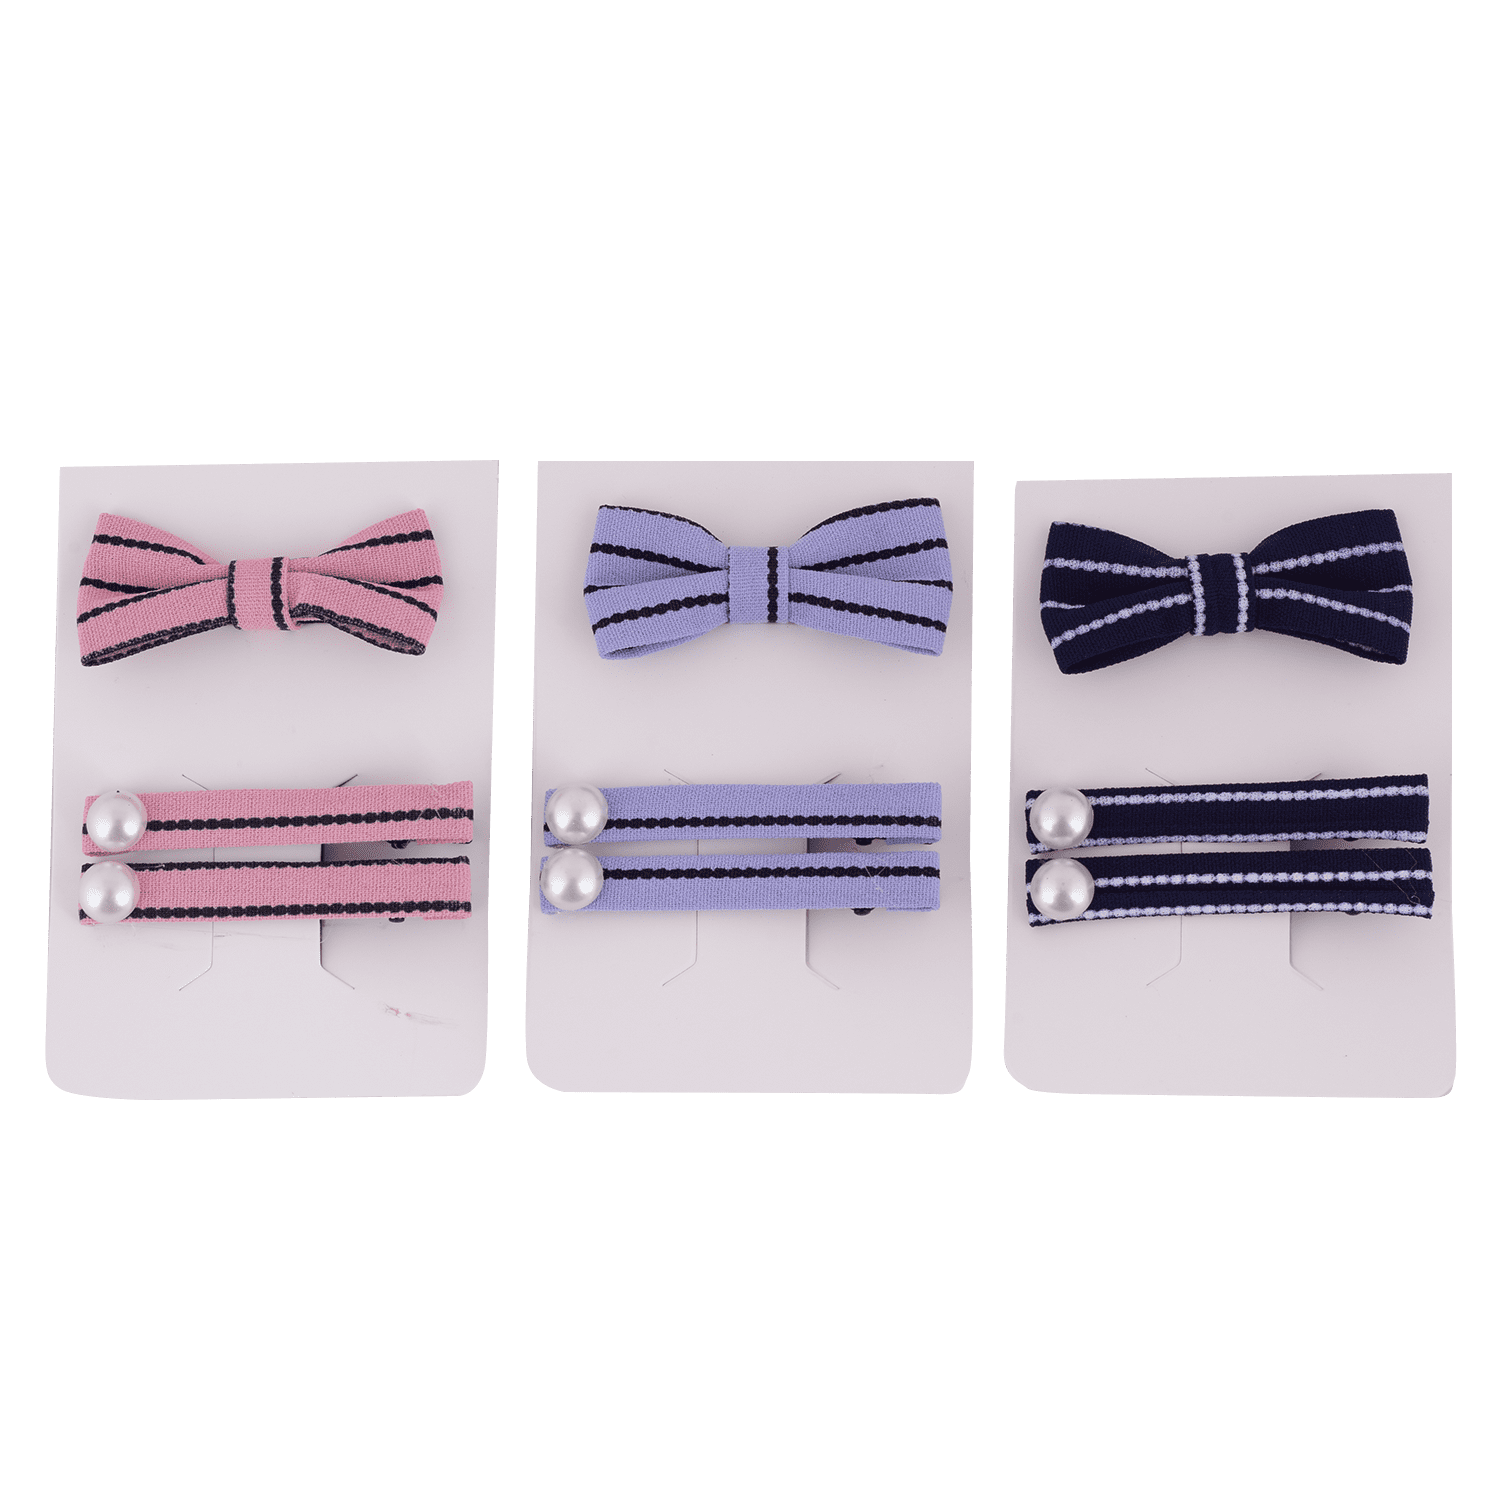 DOTTED STRIPE HAIR CLIP AND BAND SET 3 PCS